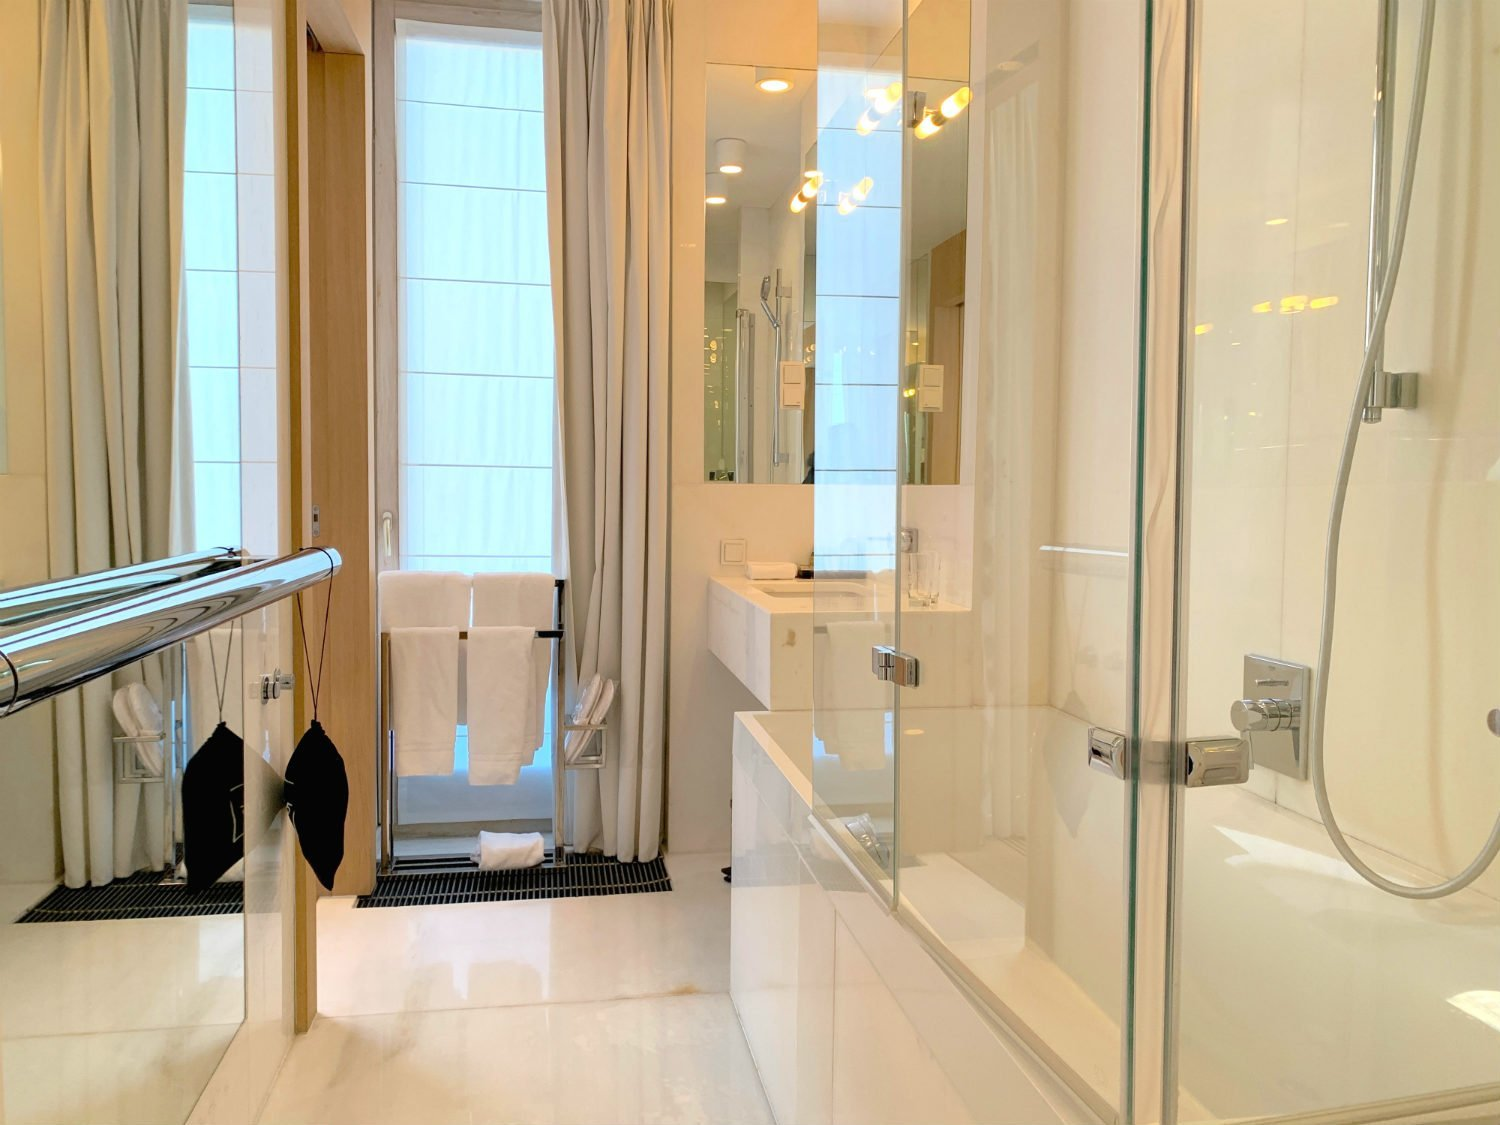 H15 Boutique Hotel - a Warsaw luxury stay 5